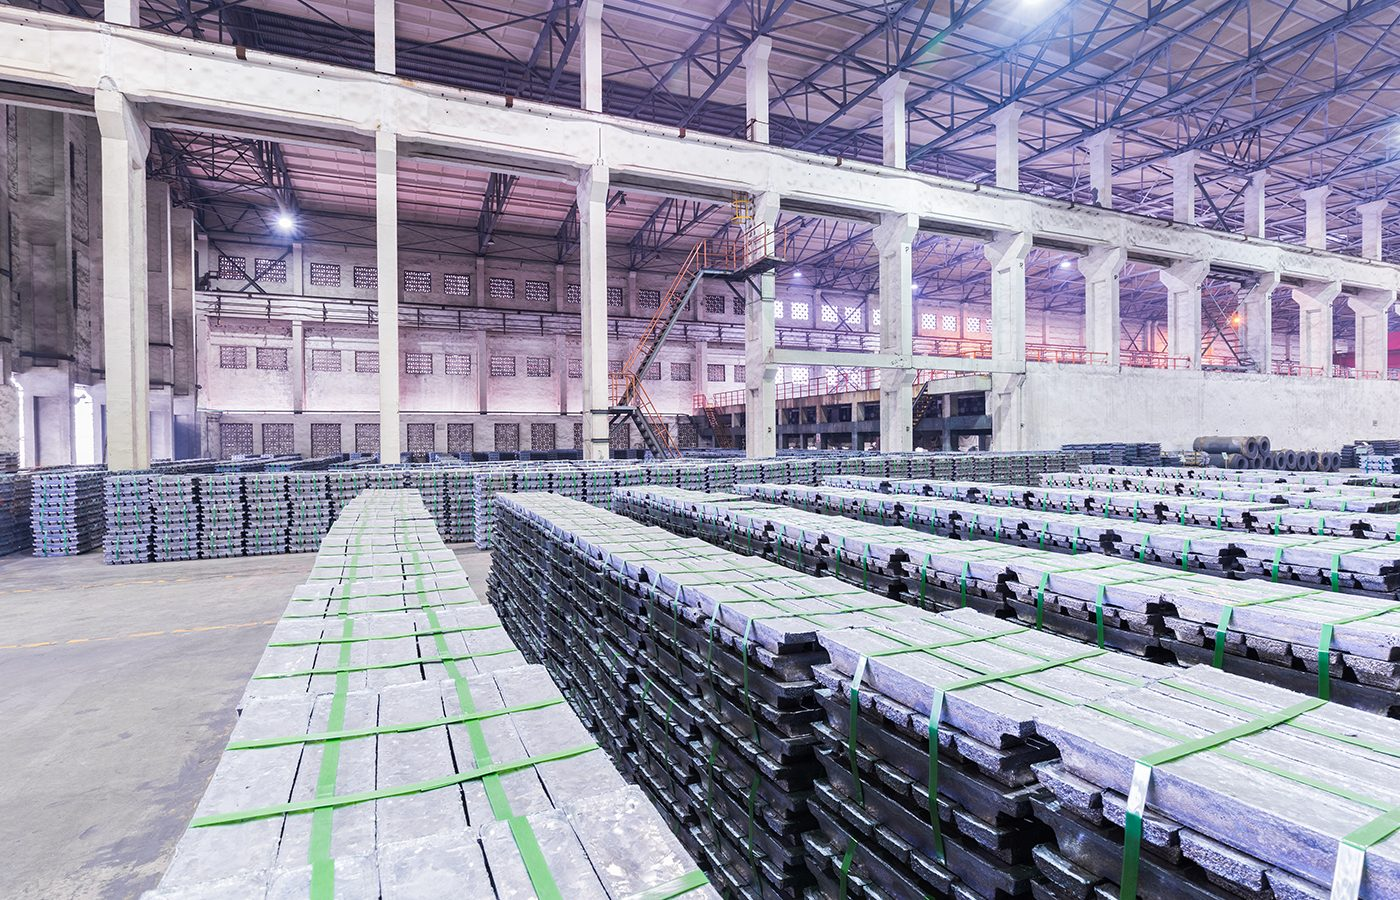 lead ingots in a factory warehouse, industrial manufacturing background